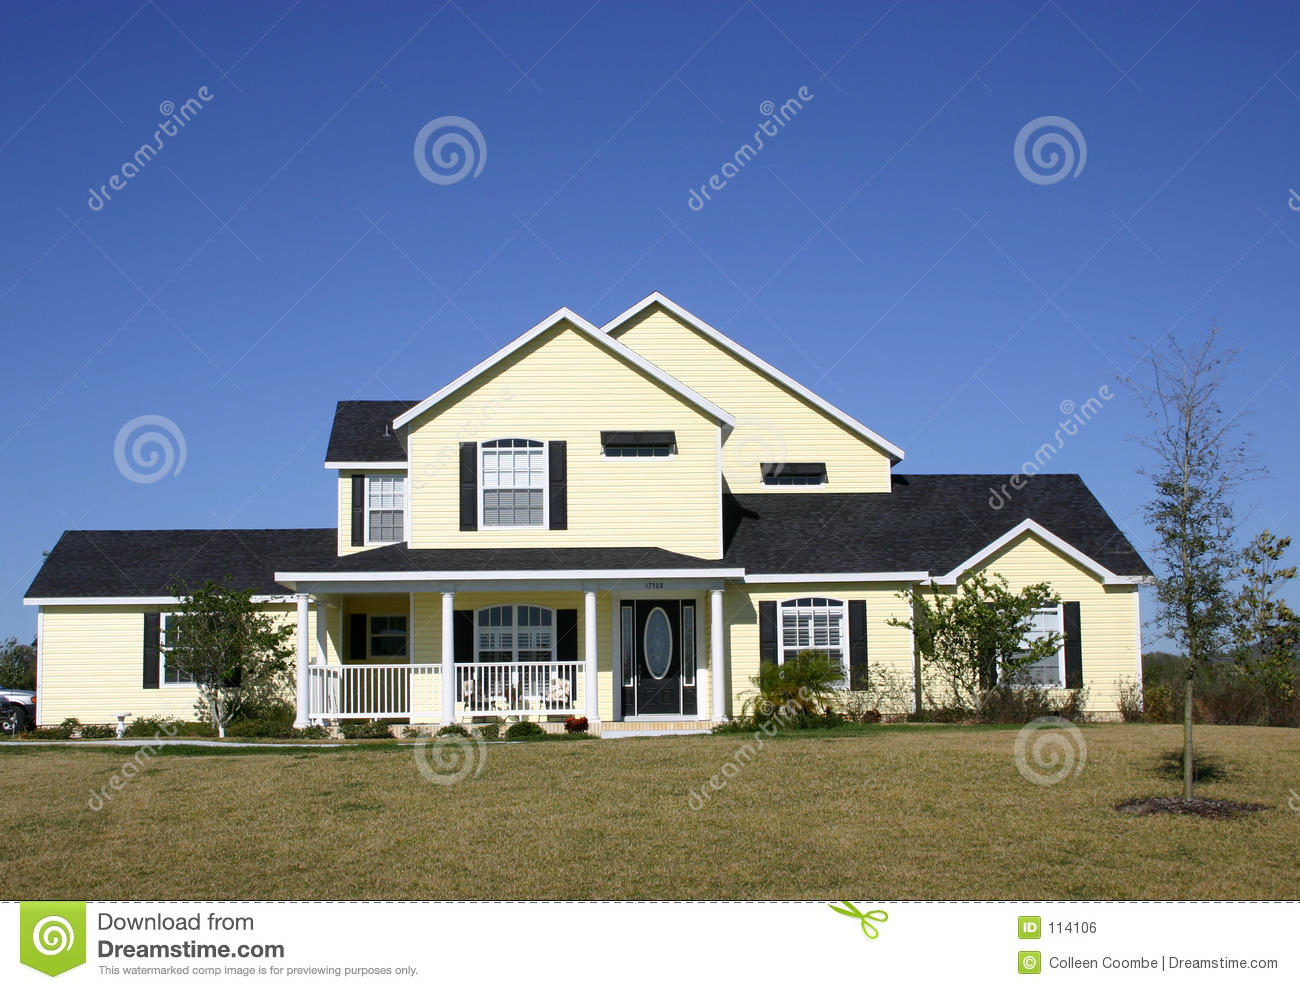 Typical american home stock photo image of suburbs farm for Americanhome com